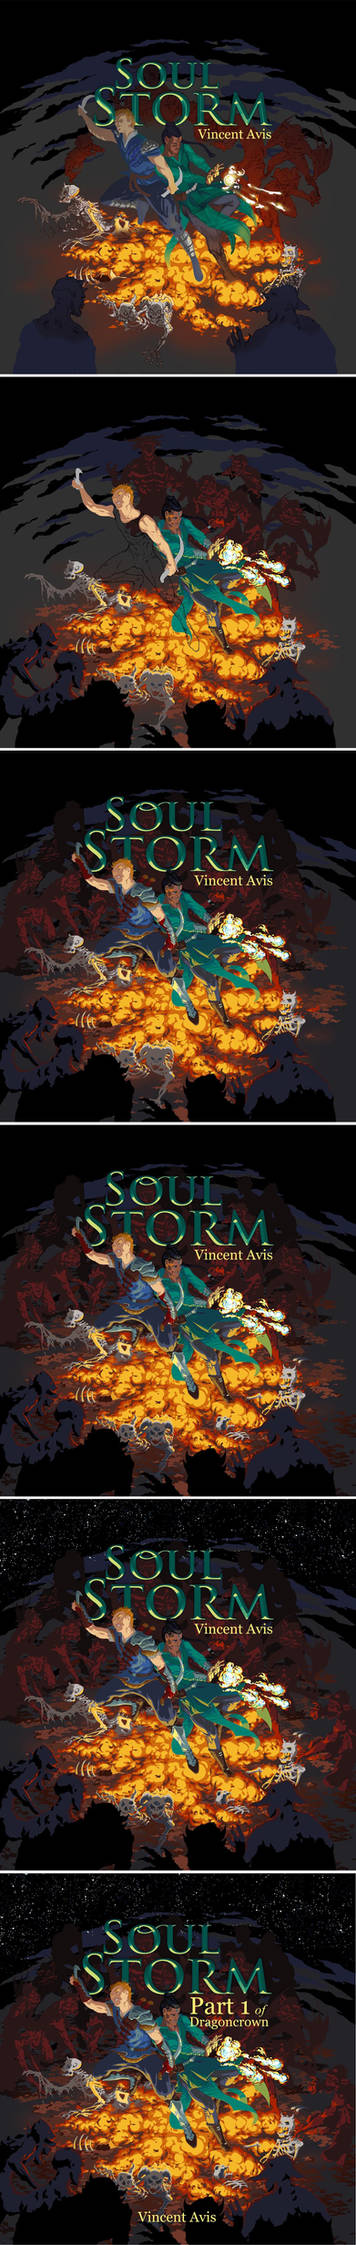 Soul Storm Cover Art step by step